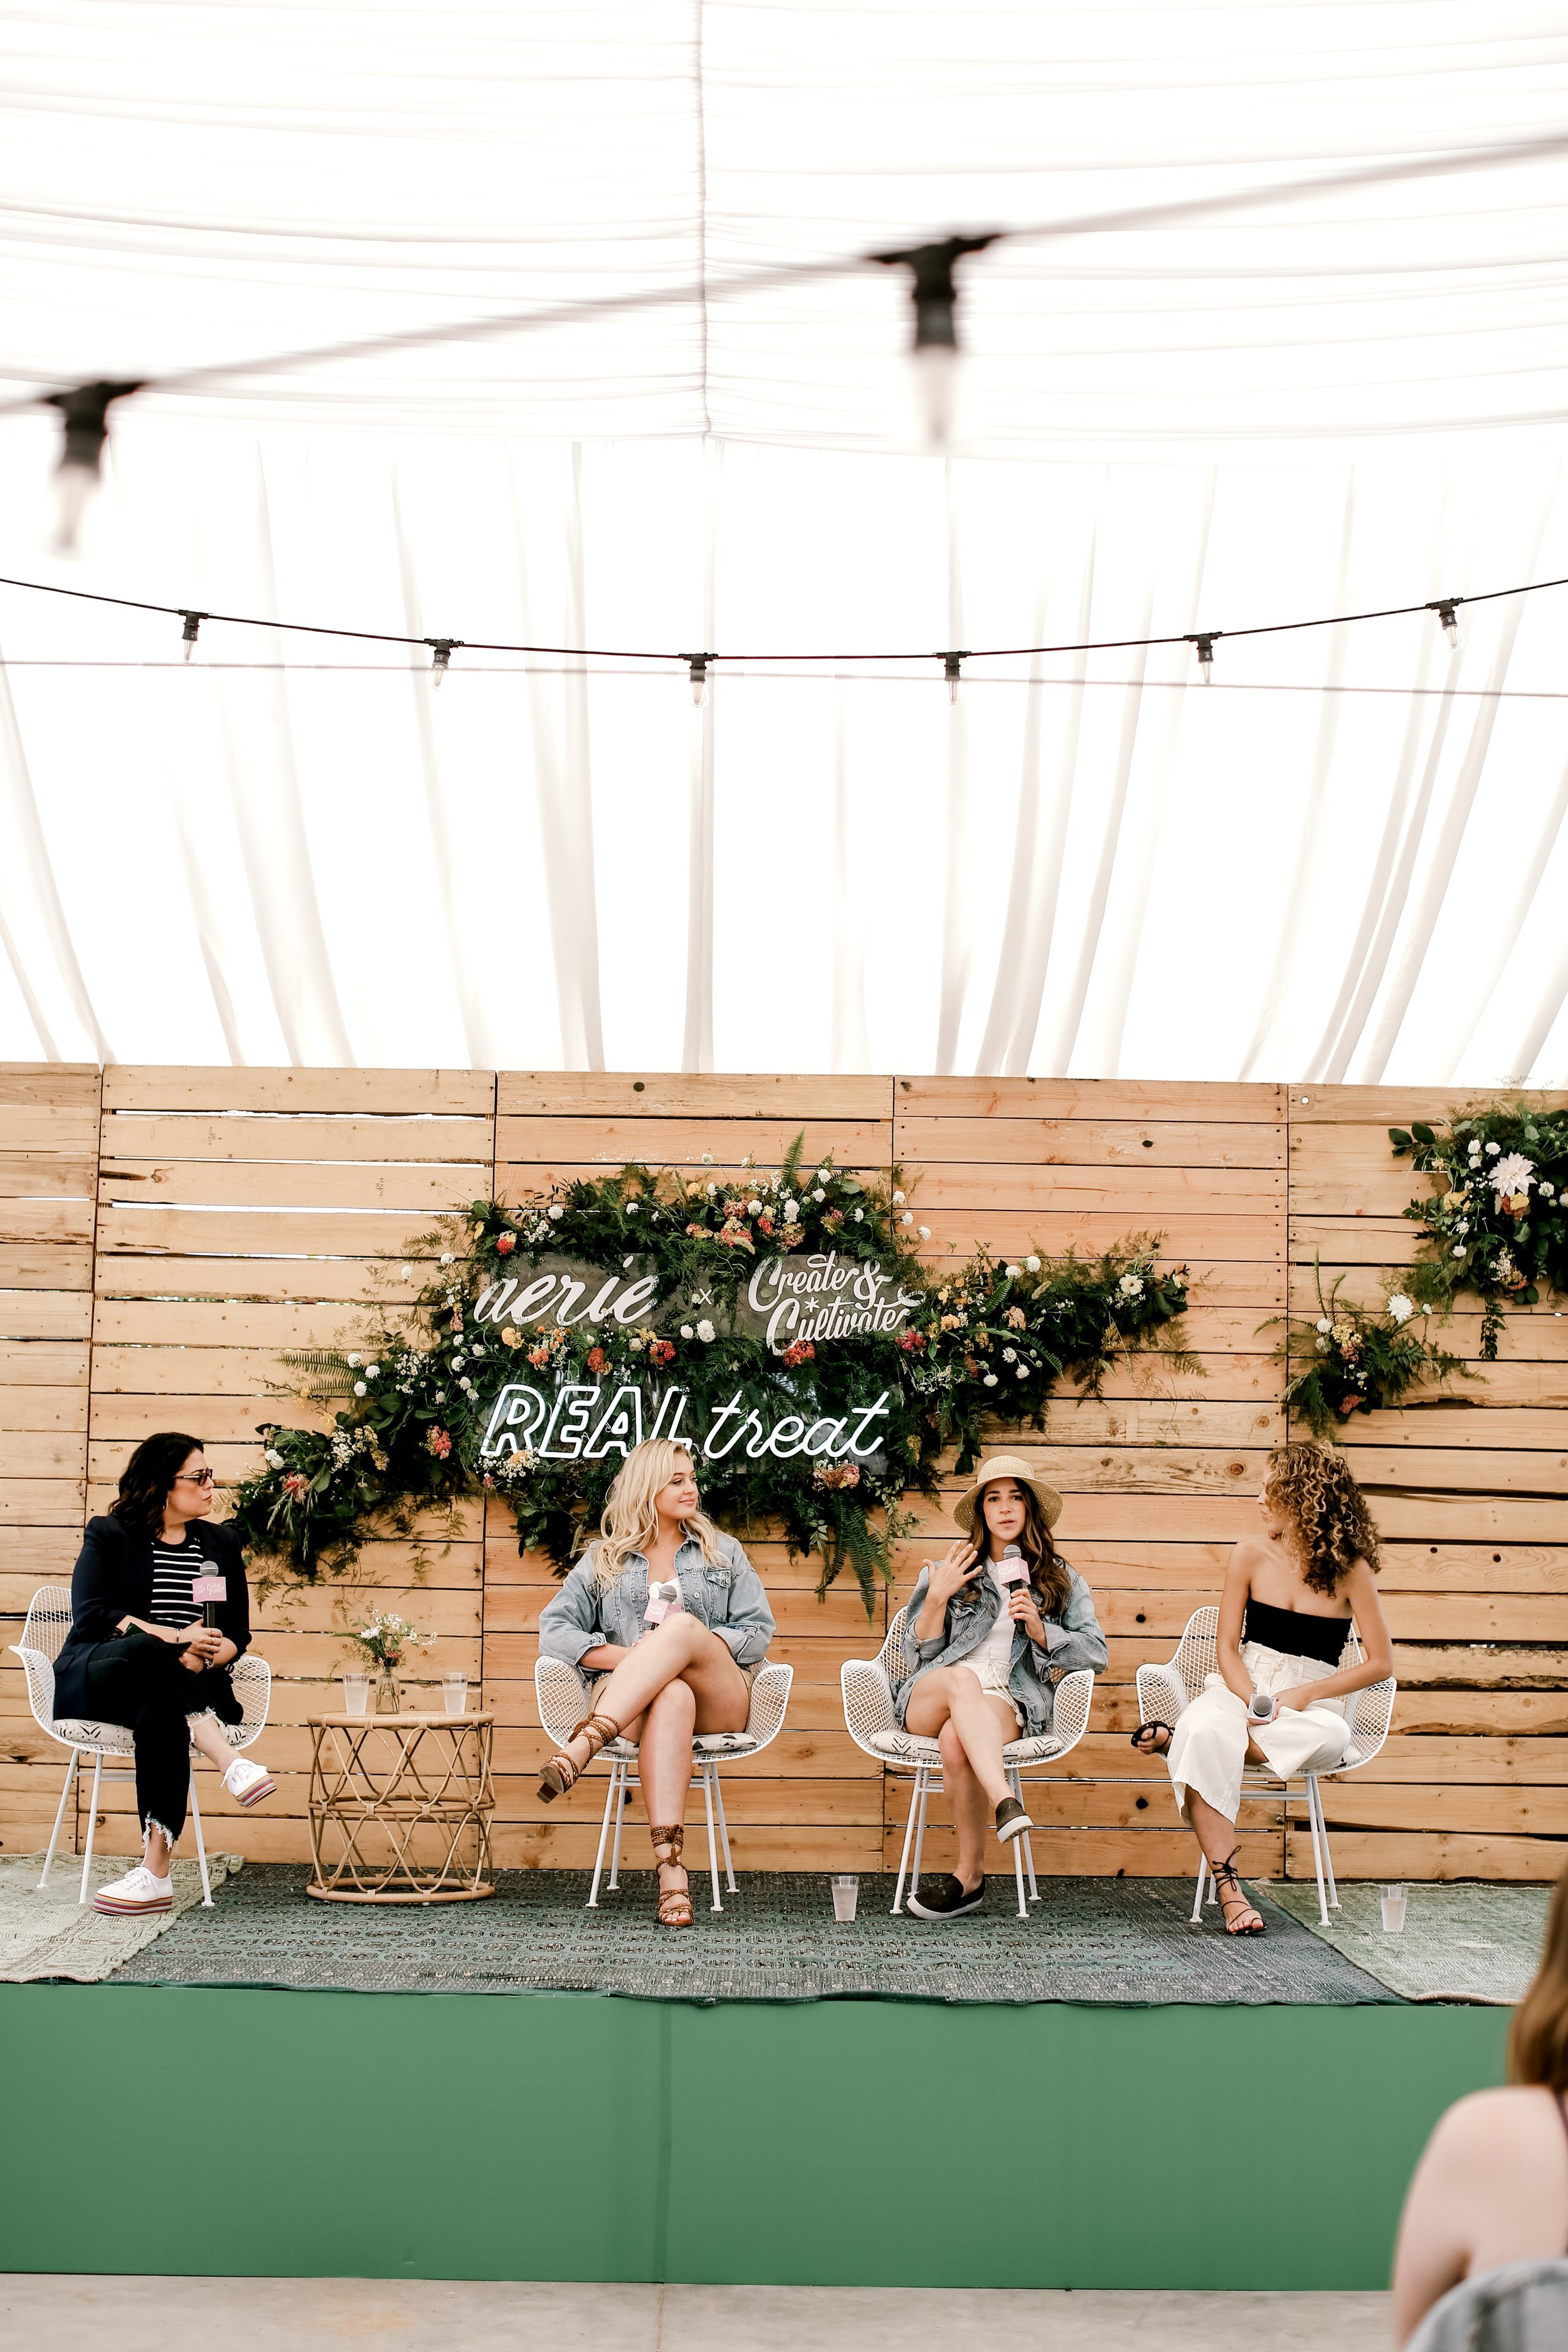 The panel discuss the concept of being real at #AerieREALtreat for Create + Cultivate.